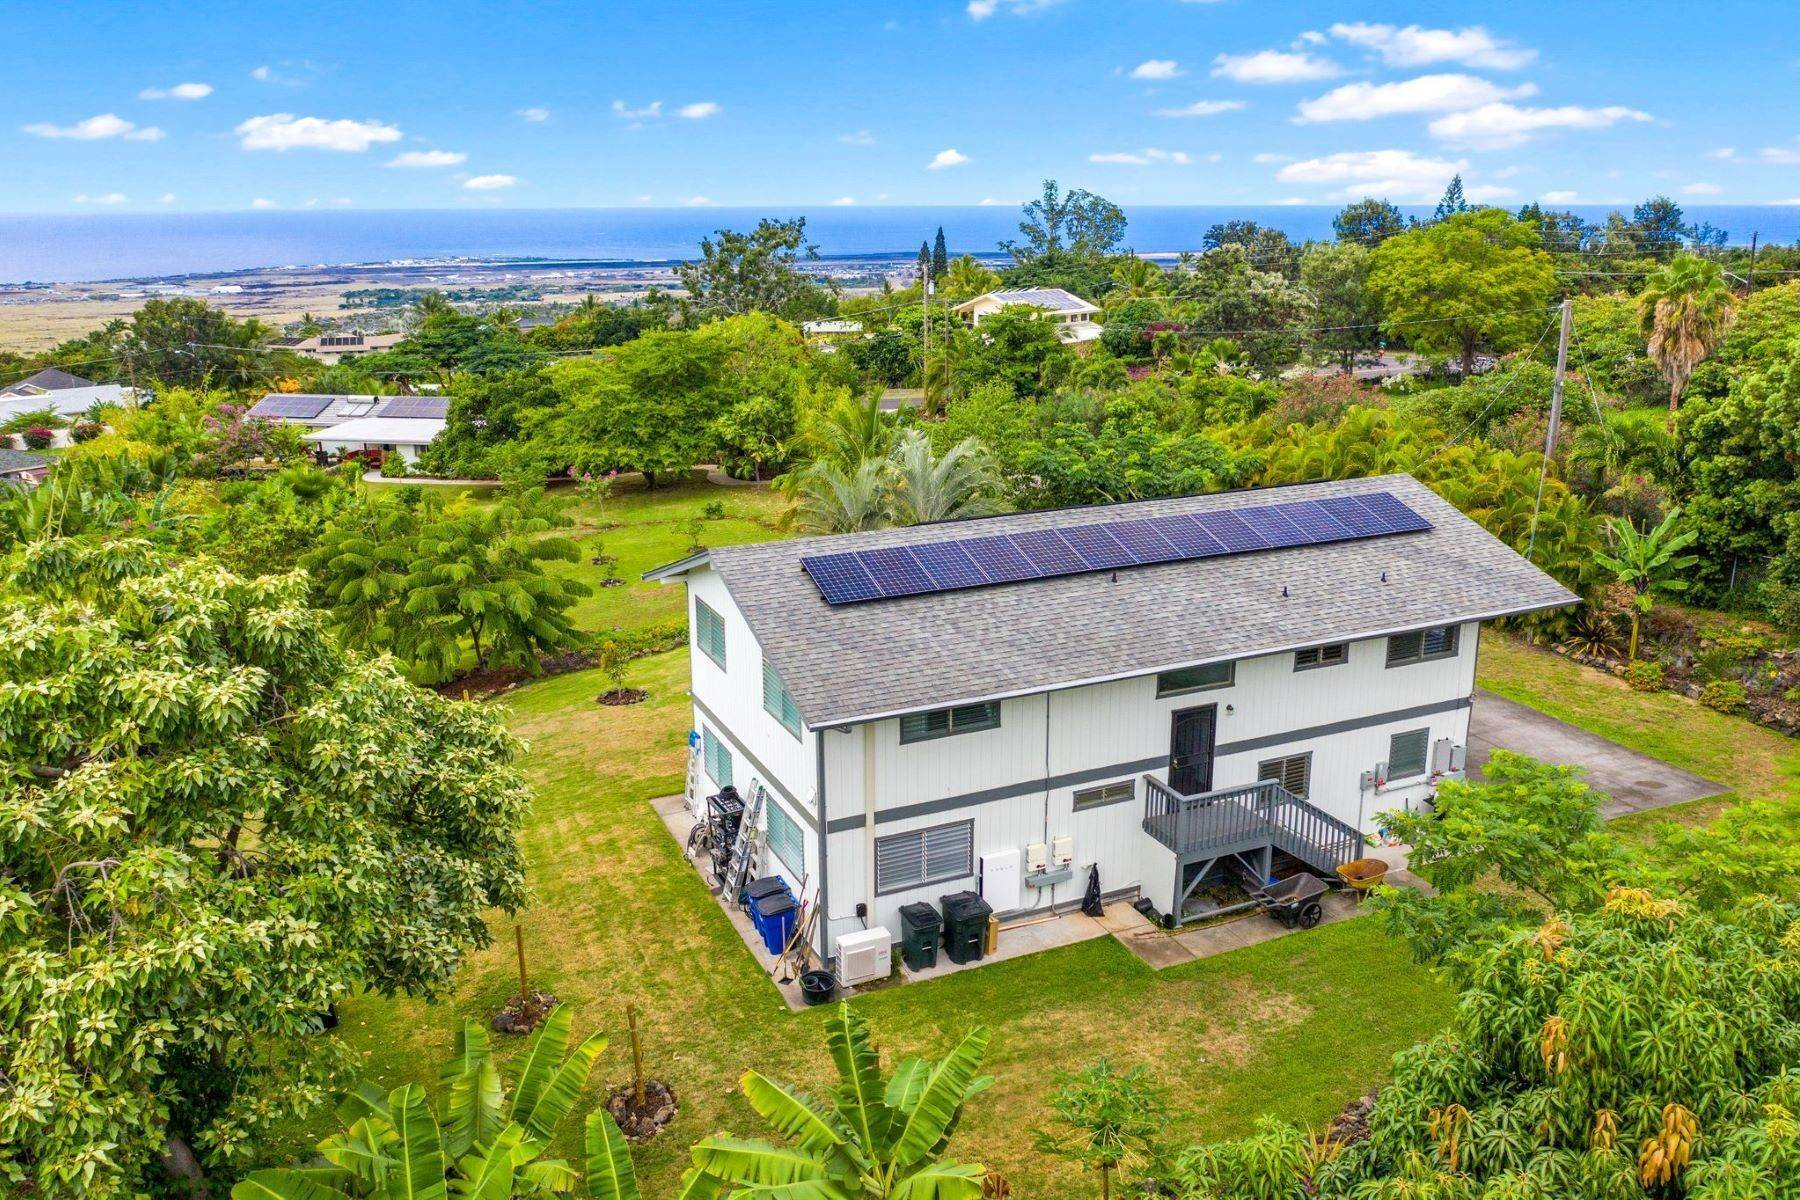 Single Family Homes for Sale at 73-4385 Holoholo Street, Kailua-Kona, HI 96740 73-4385 Holoholo Street Kailua-Kona, Hawaii 96740 United States